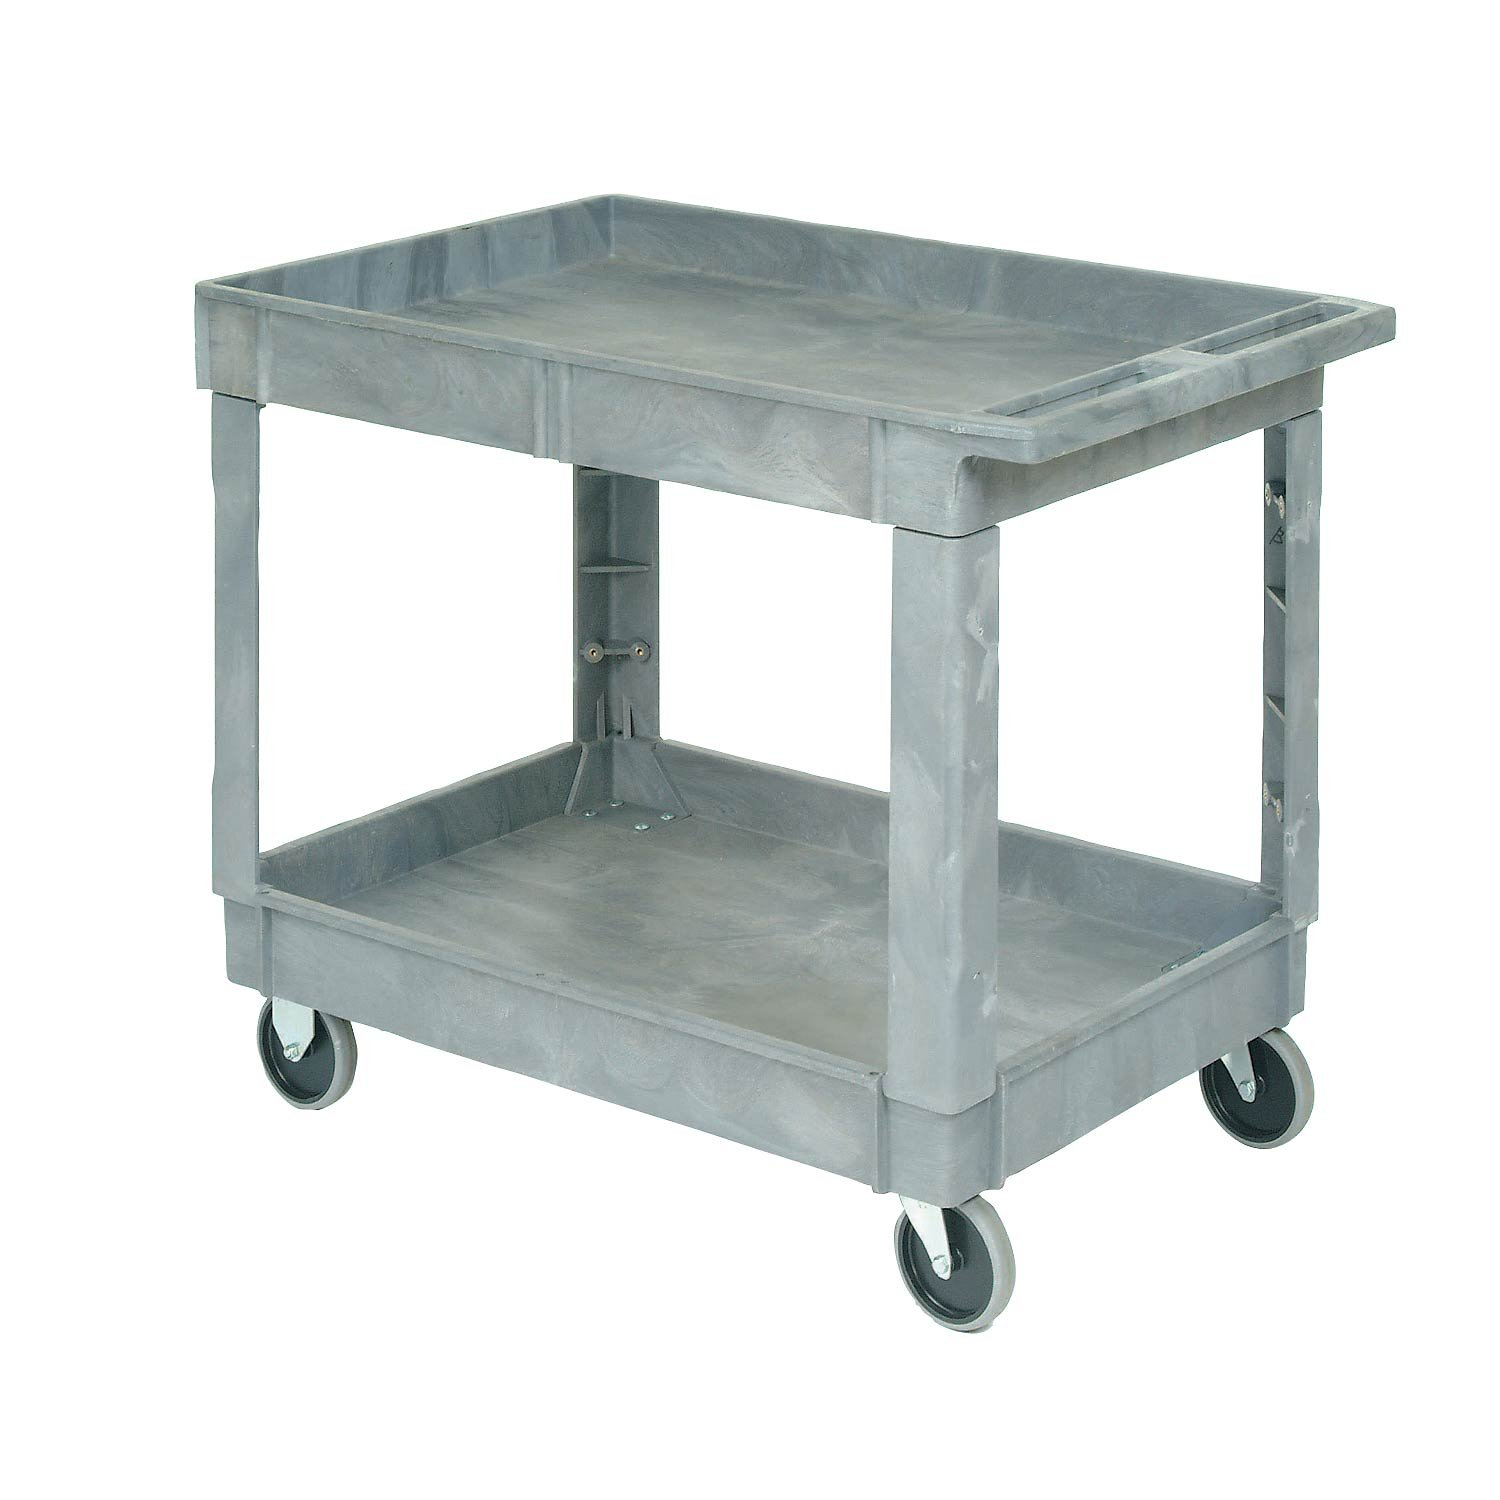 Plastic 2 Shelf Tray Service & Utility Cart 40 X 26 - 5 Inch Rubber Casters